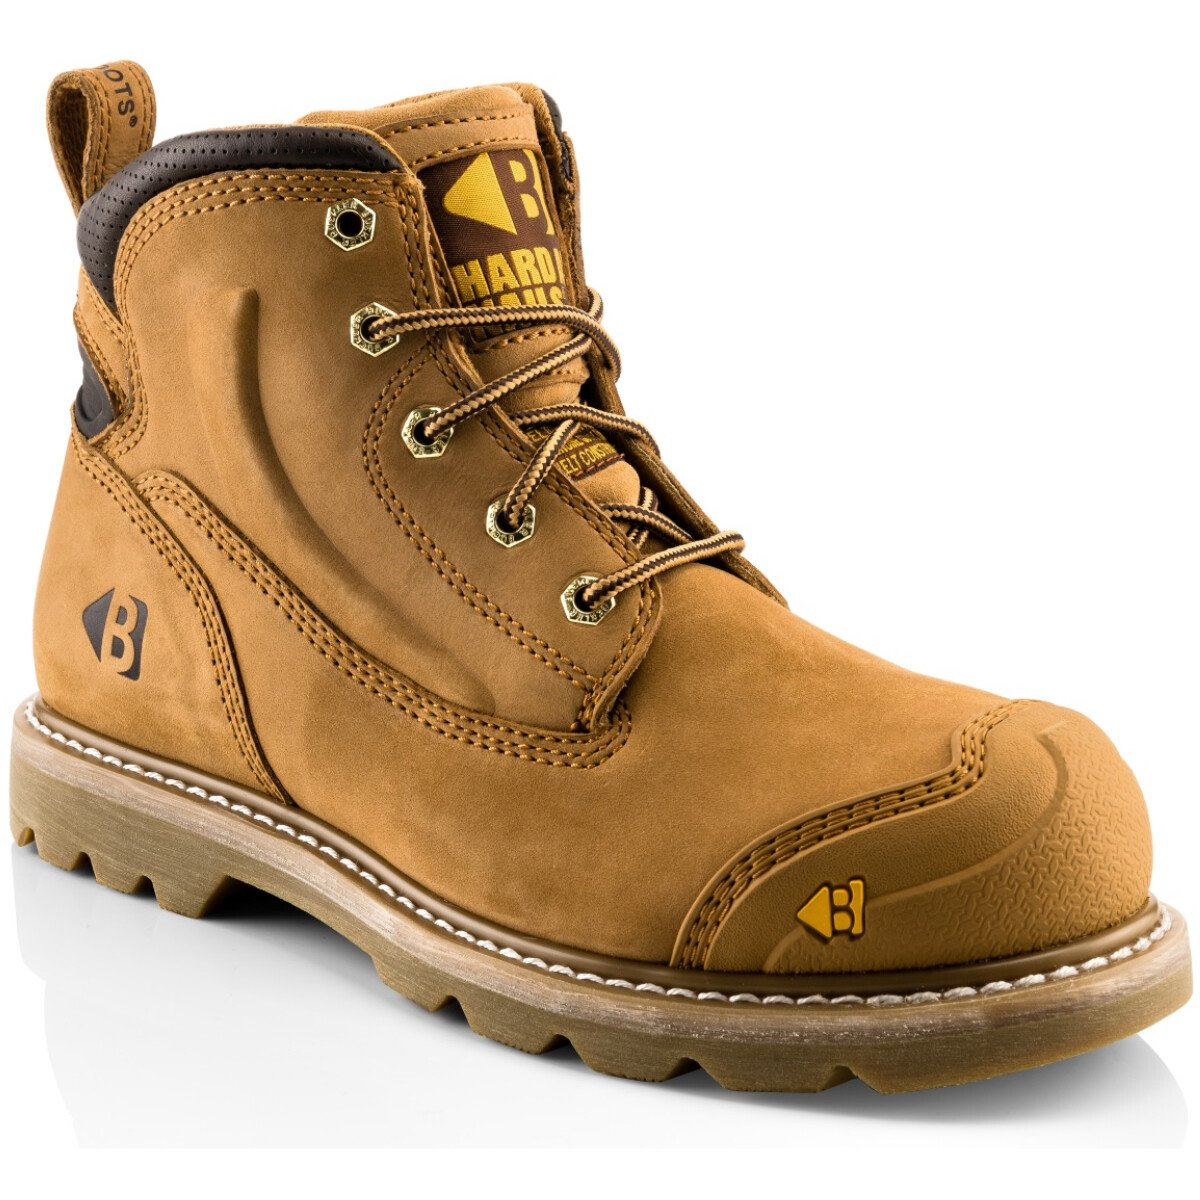 Buckler Boots B650SM Honey Nubuck Leather Goodyear Welted Safety Boot SB P HRO SRC